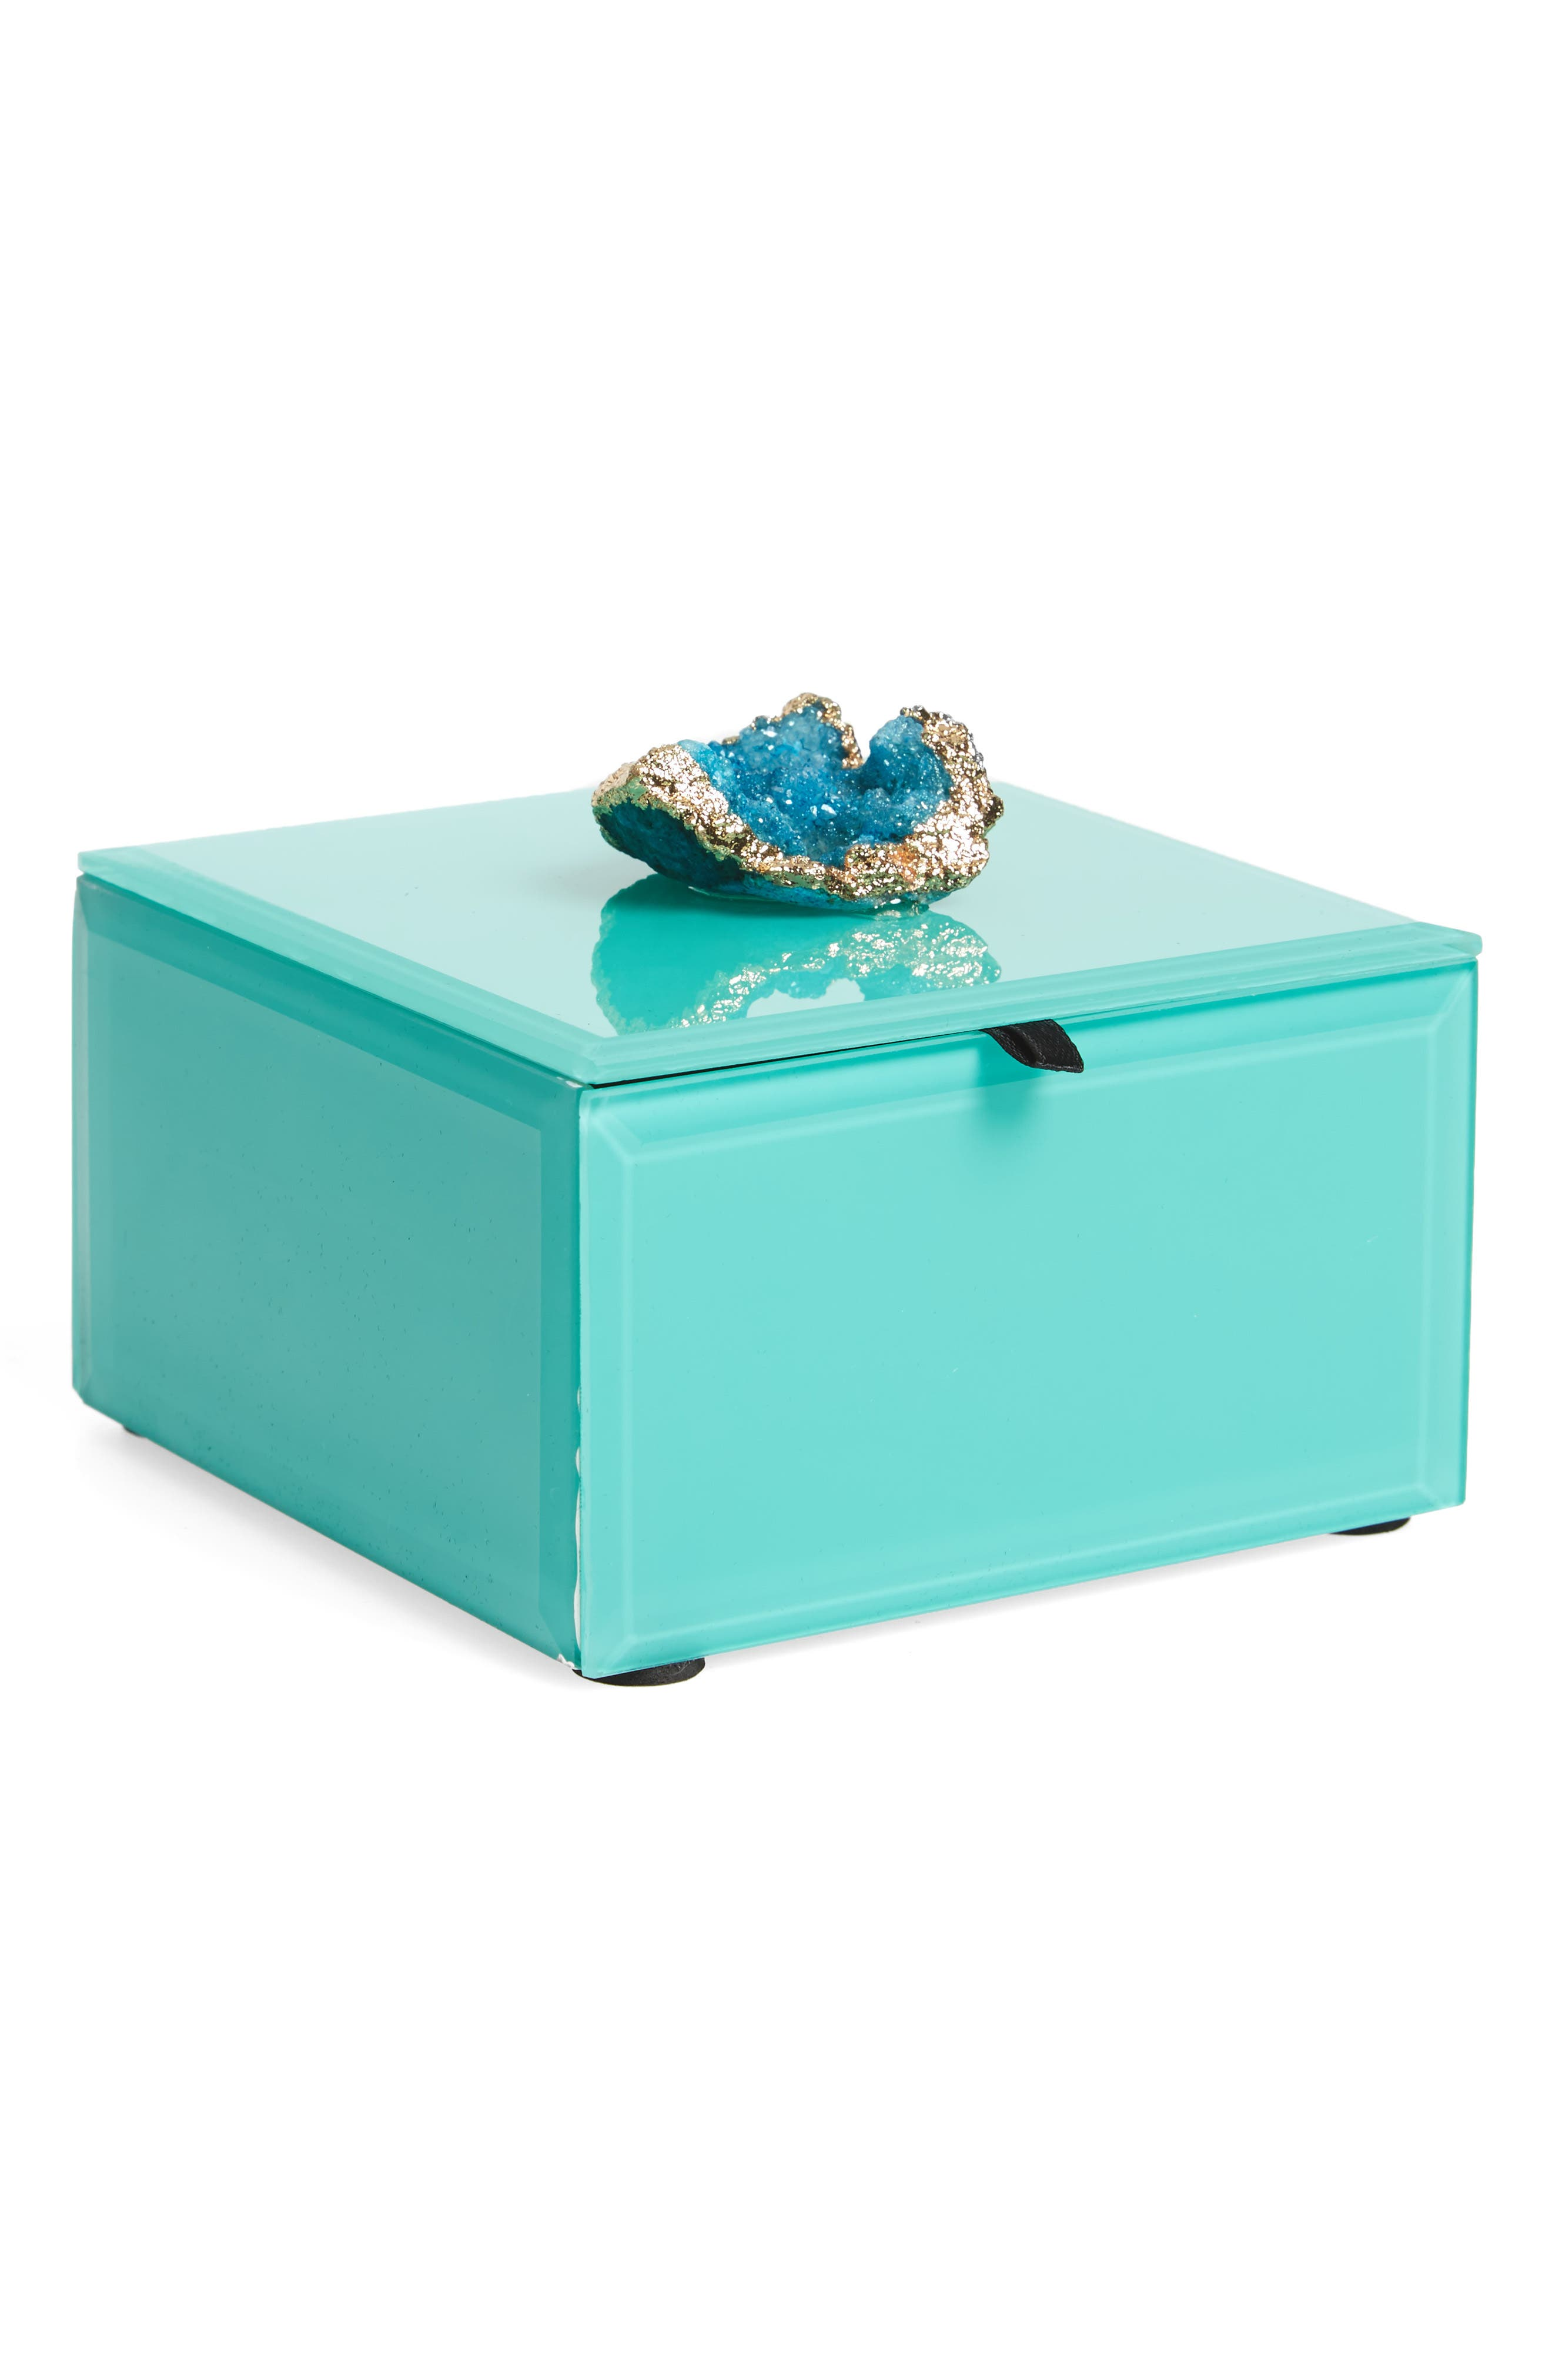 american atelier peacock agate jewelry box nordstrom